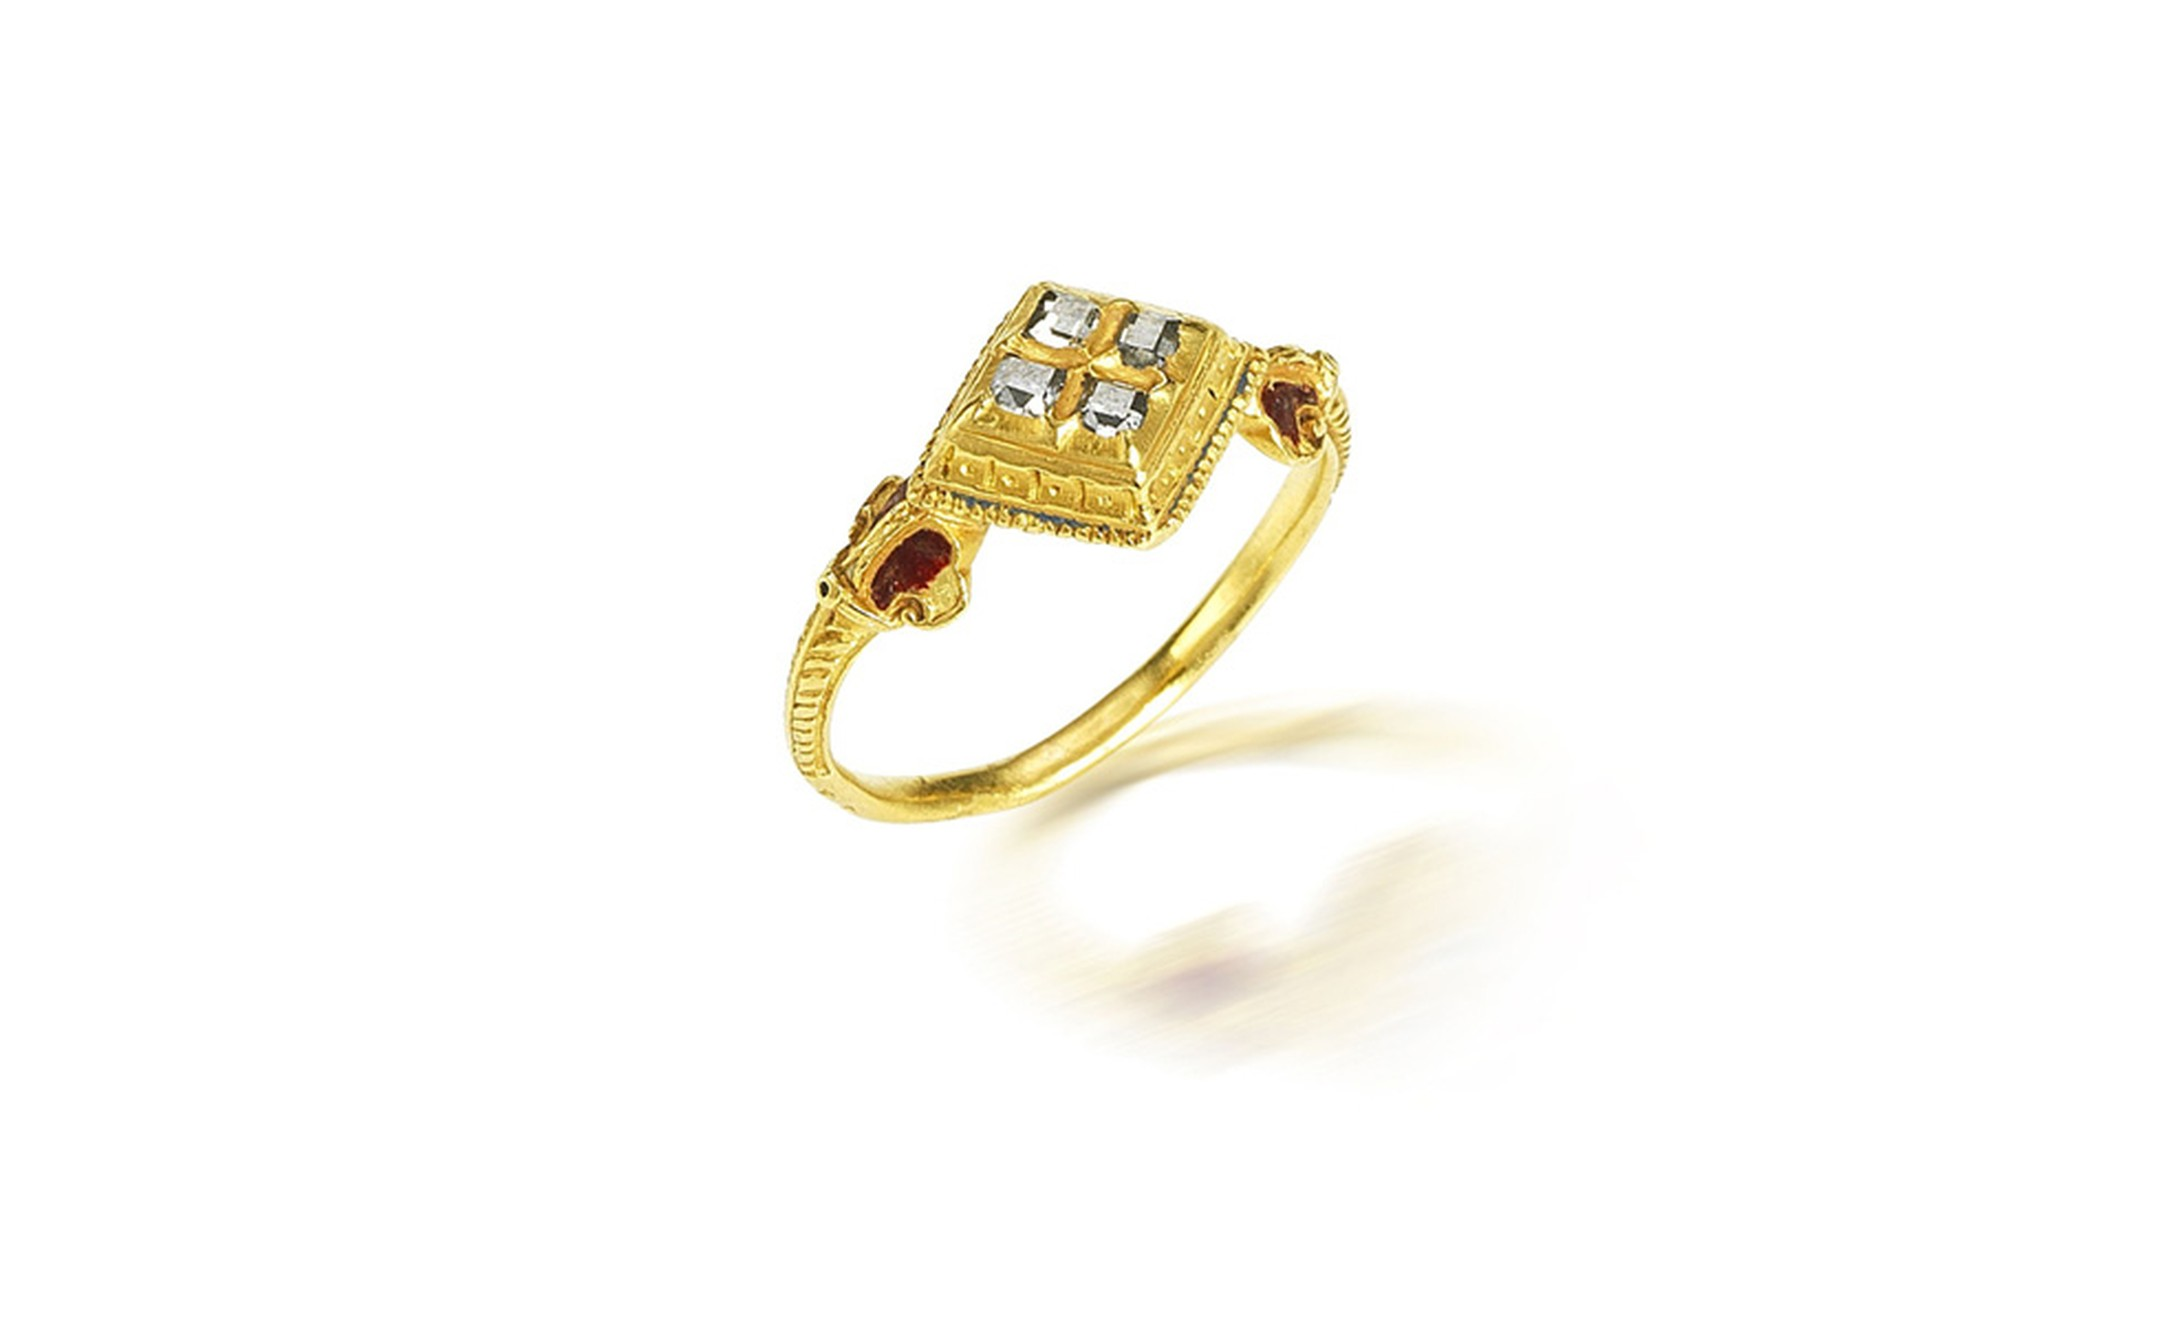 Lot 21. A gold and diamond ring, probably 17th century. Estimate £4,000-6,000. SOLD FOR £8,750.